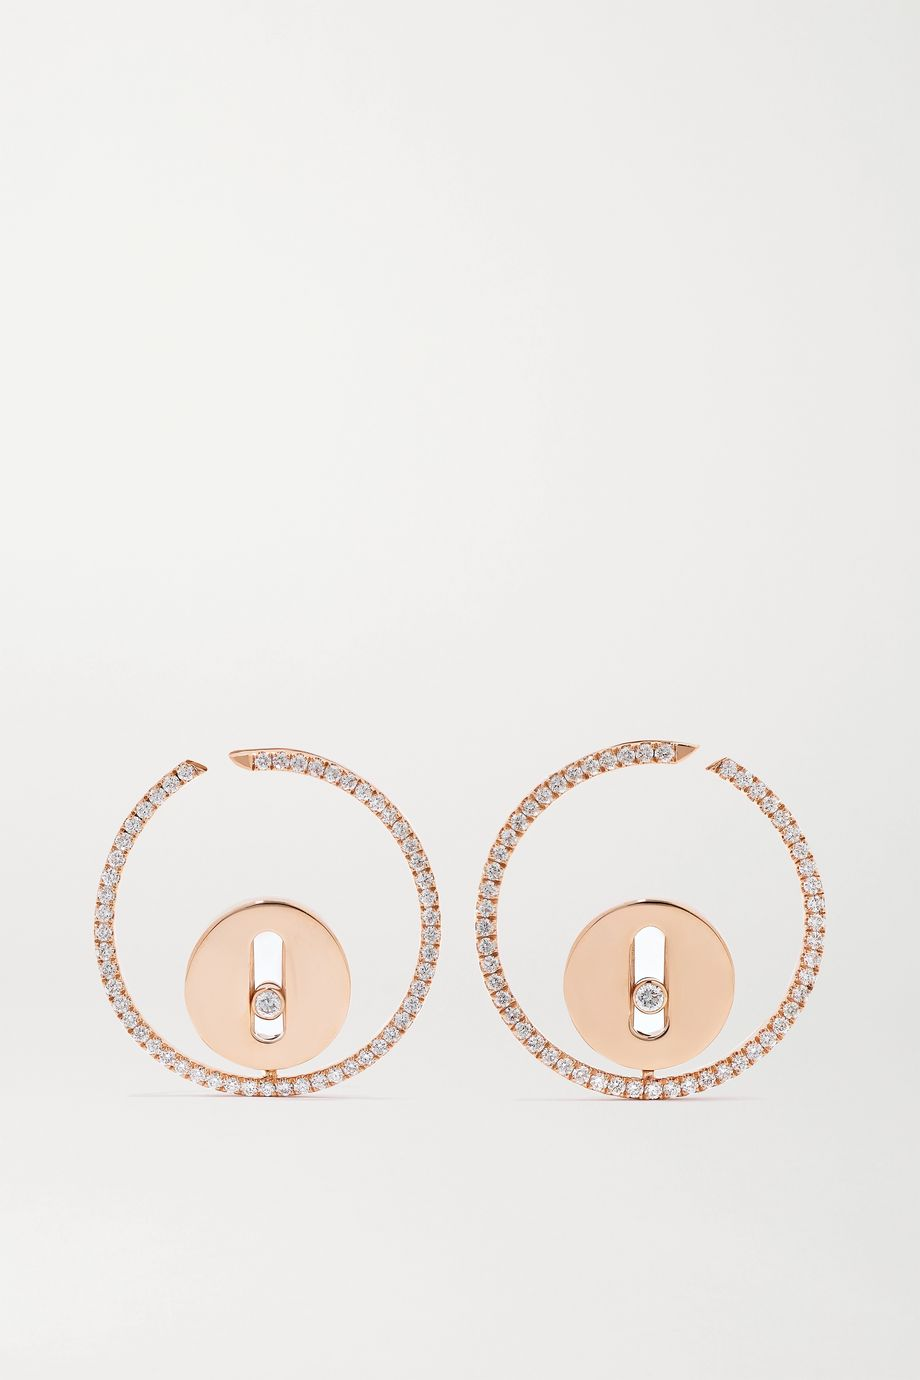 Messika Lucky Move 18-karat rose gold diamond earrings